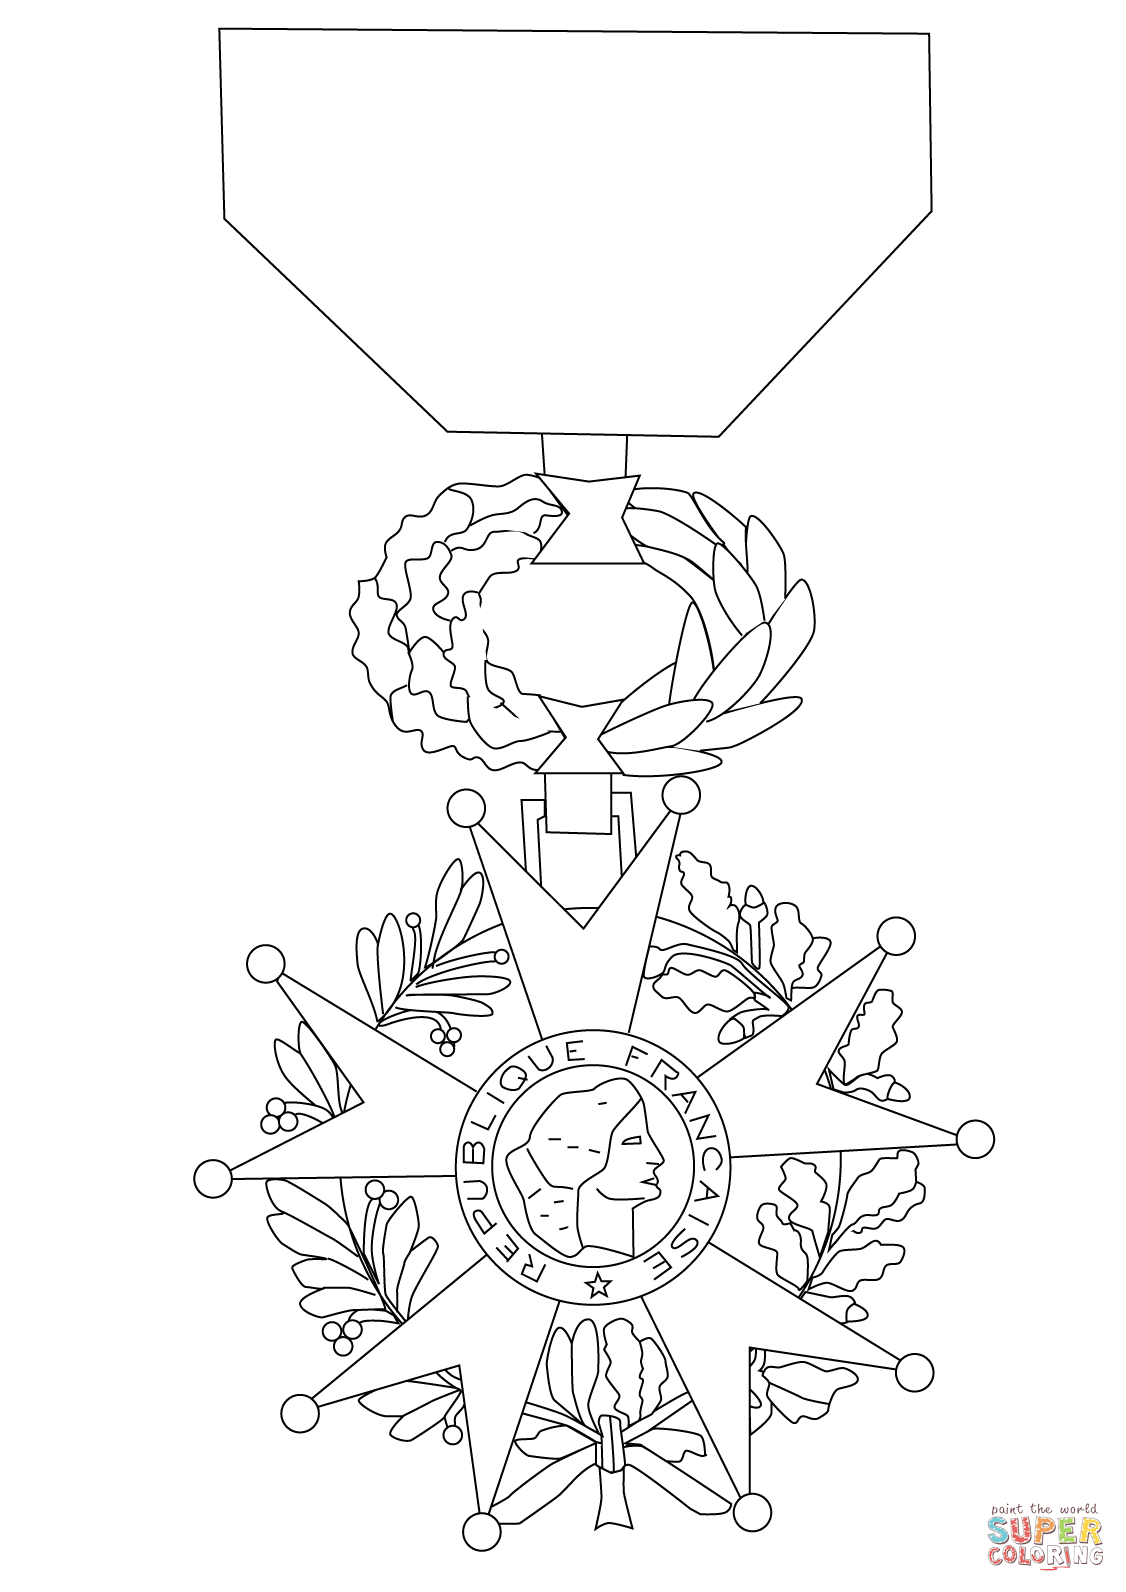 medal coloring page medal drawing at getdrawings free download coloring medal page